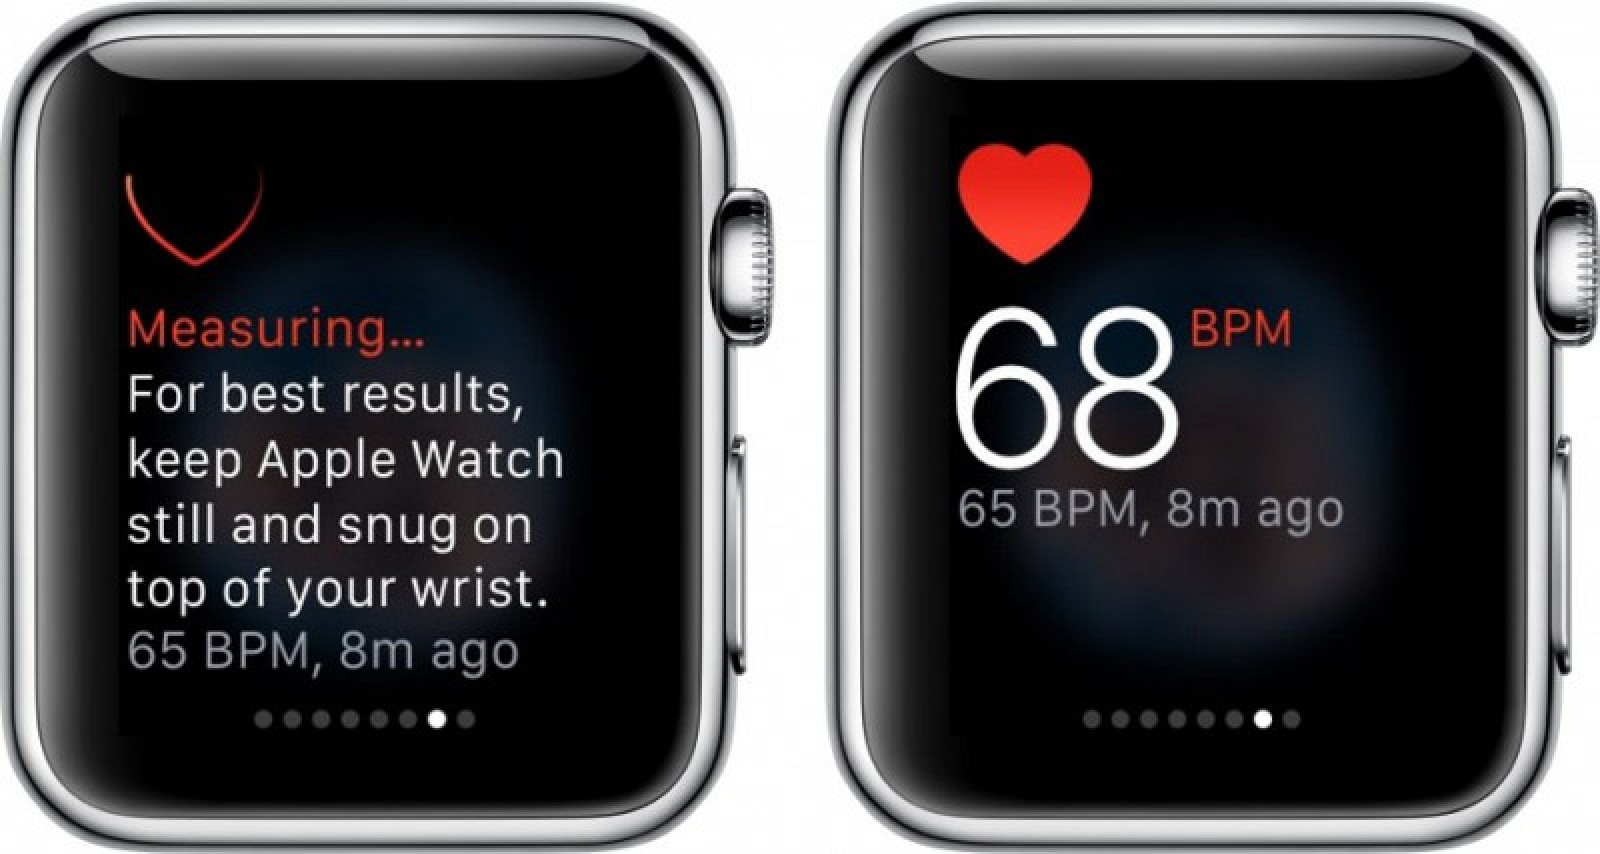 AppleWatchHeartRateMonitor